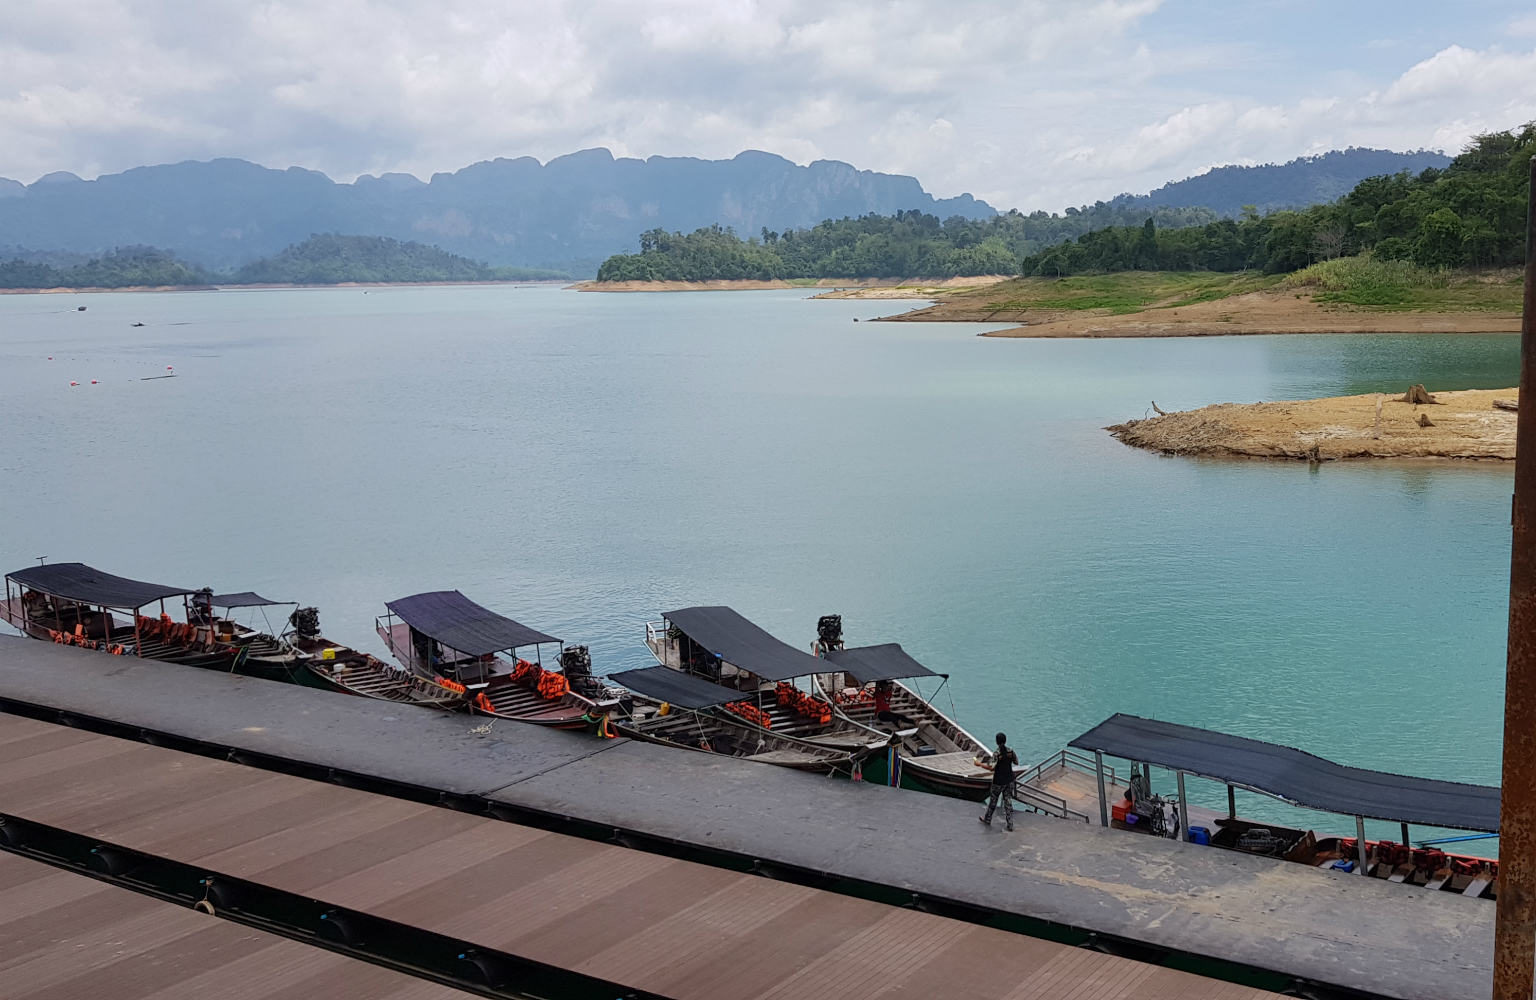 The pier of Cheow Lan Lake in the Khao Sok National Pak